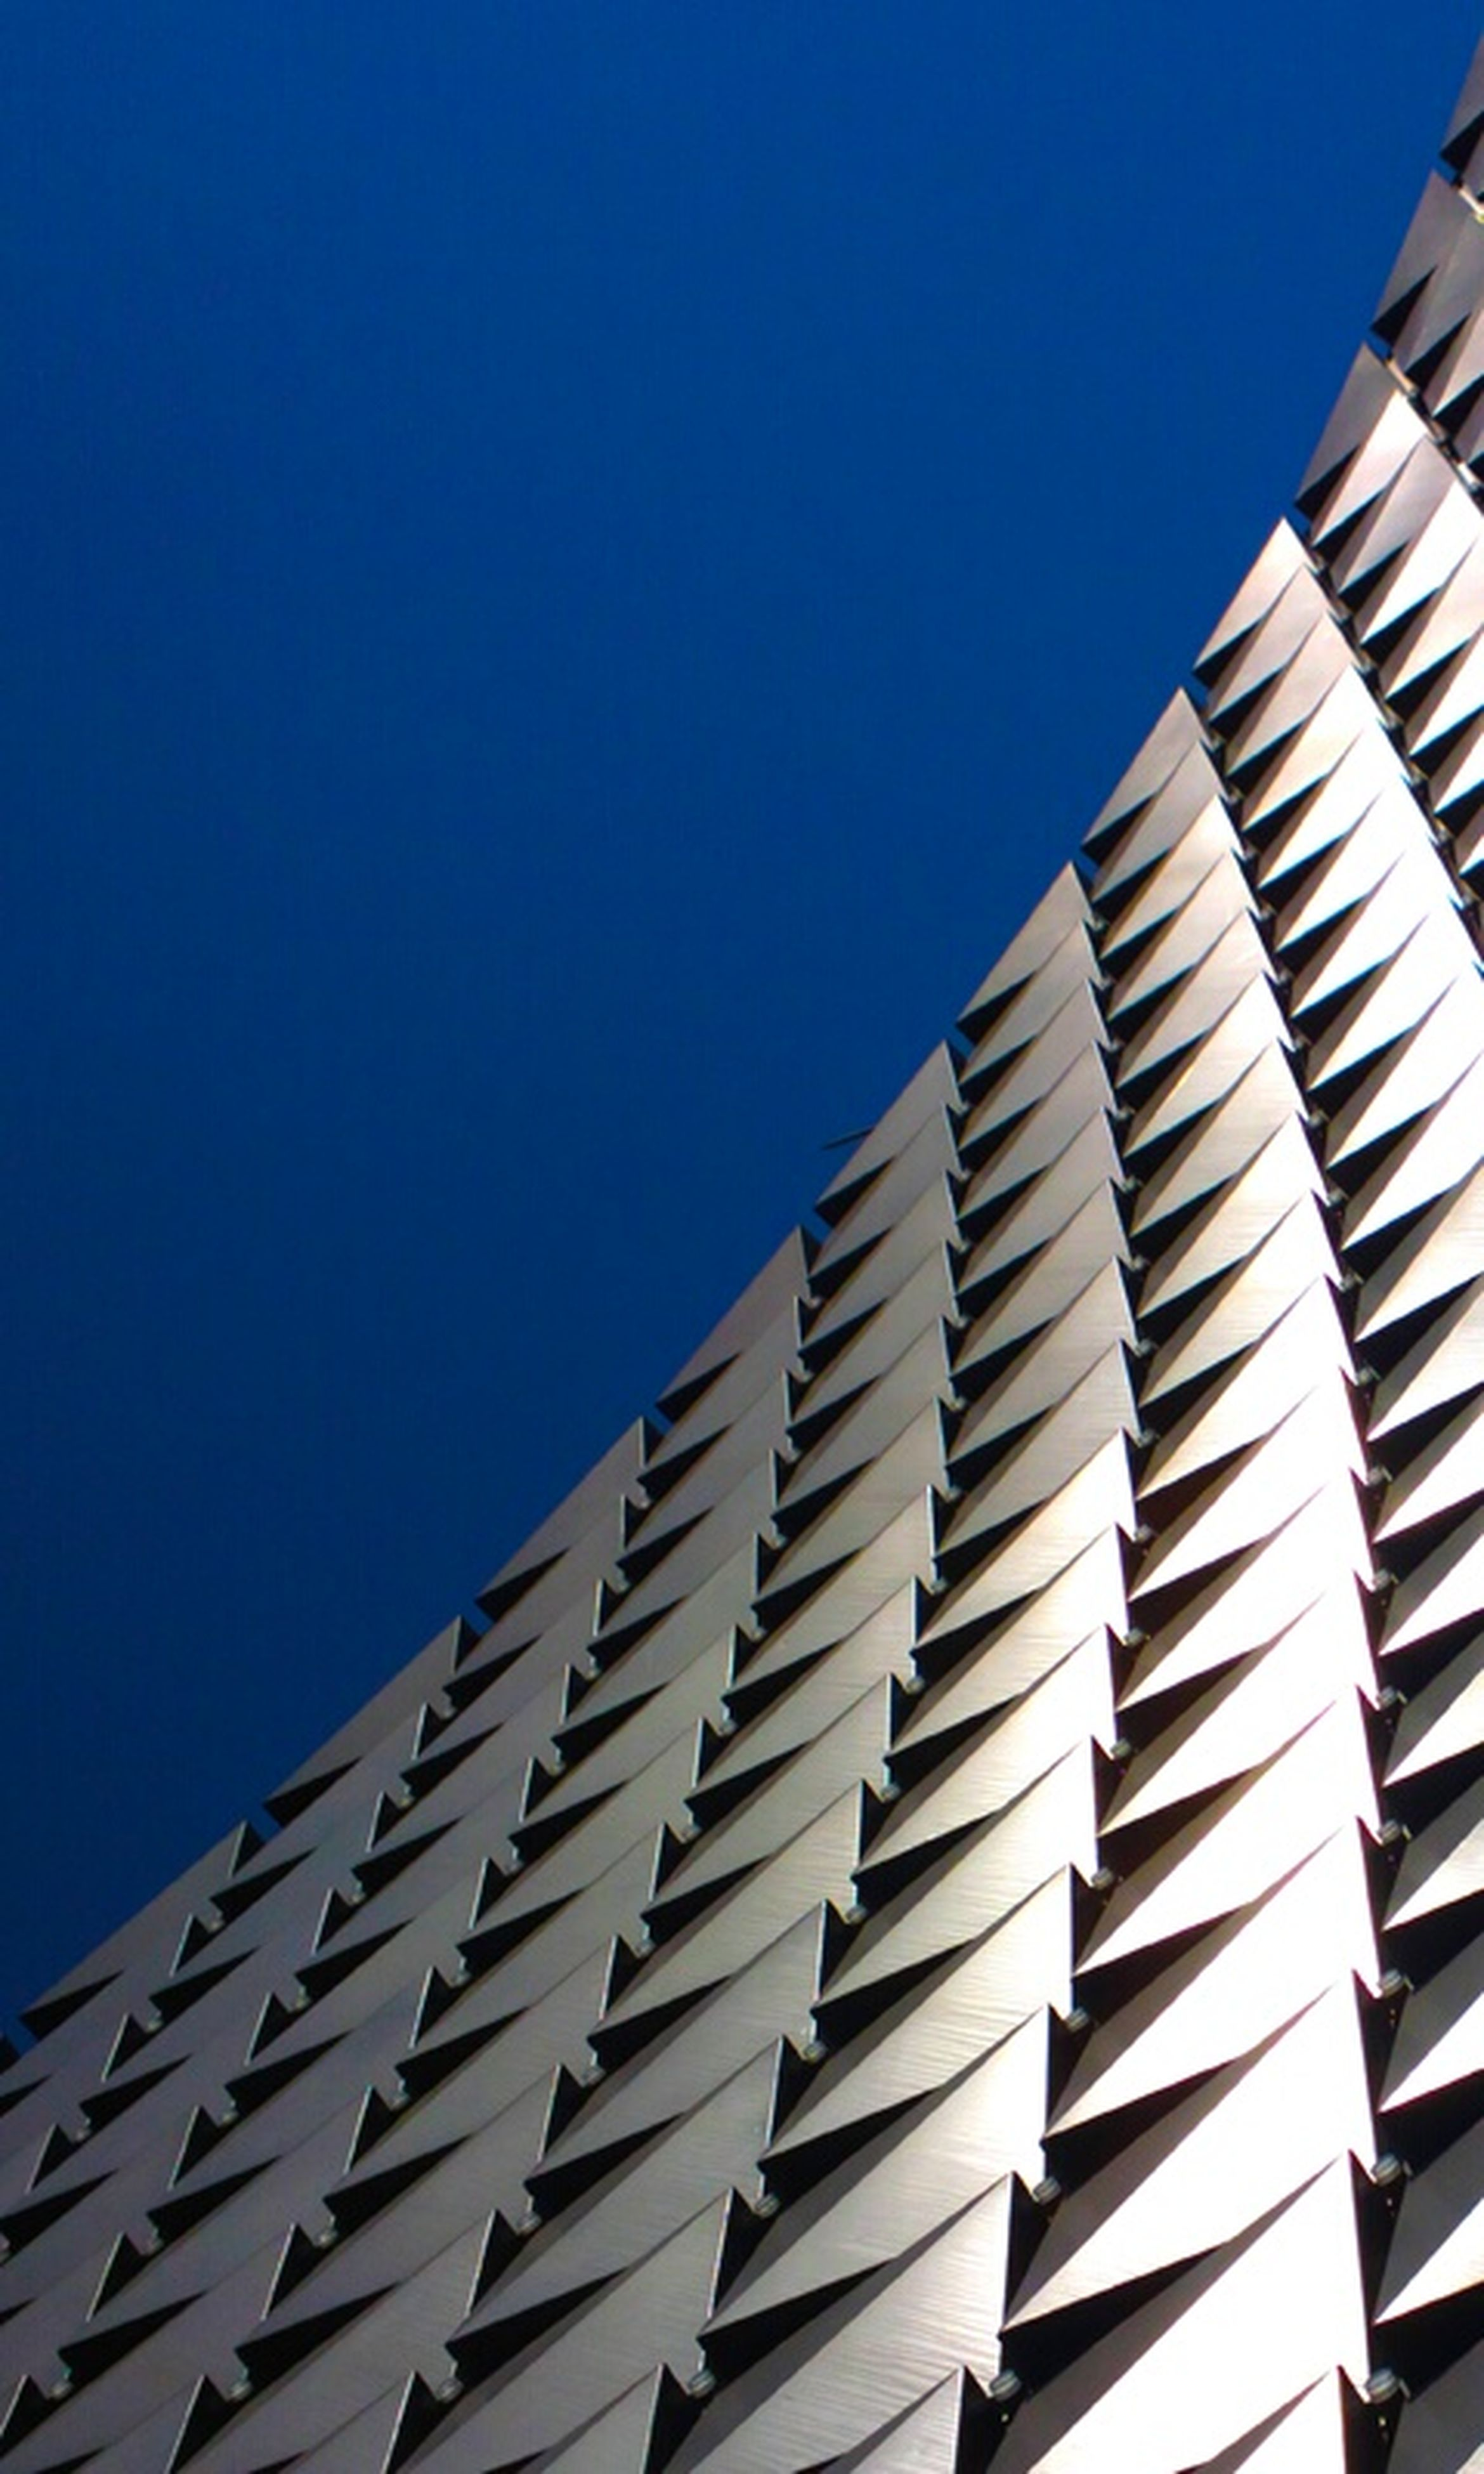 clear sky, low angle view, architecture, building exterior, built structure, blue, copy space, modern, building, city, high section, day, office building, outdoors, part of, no people, tall - high, sunlight, pattern, sky